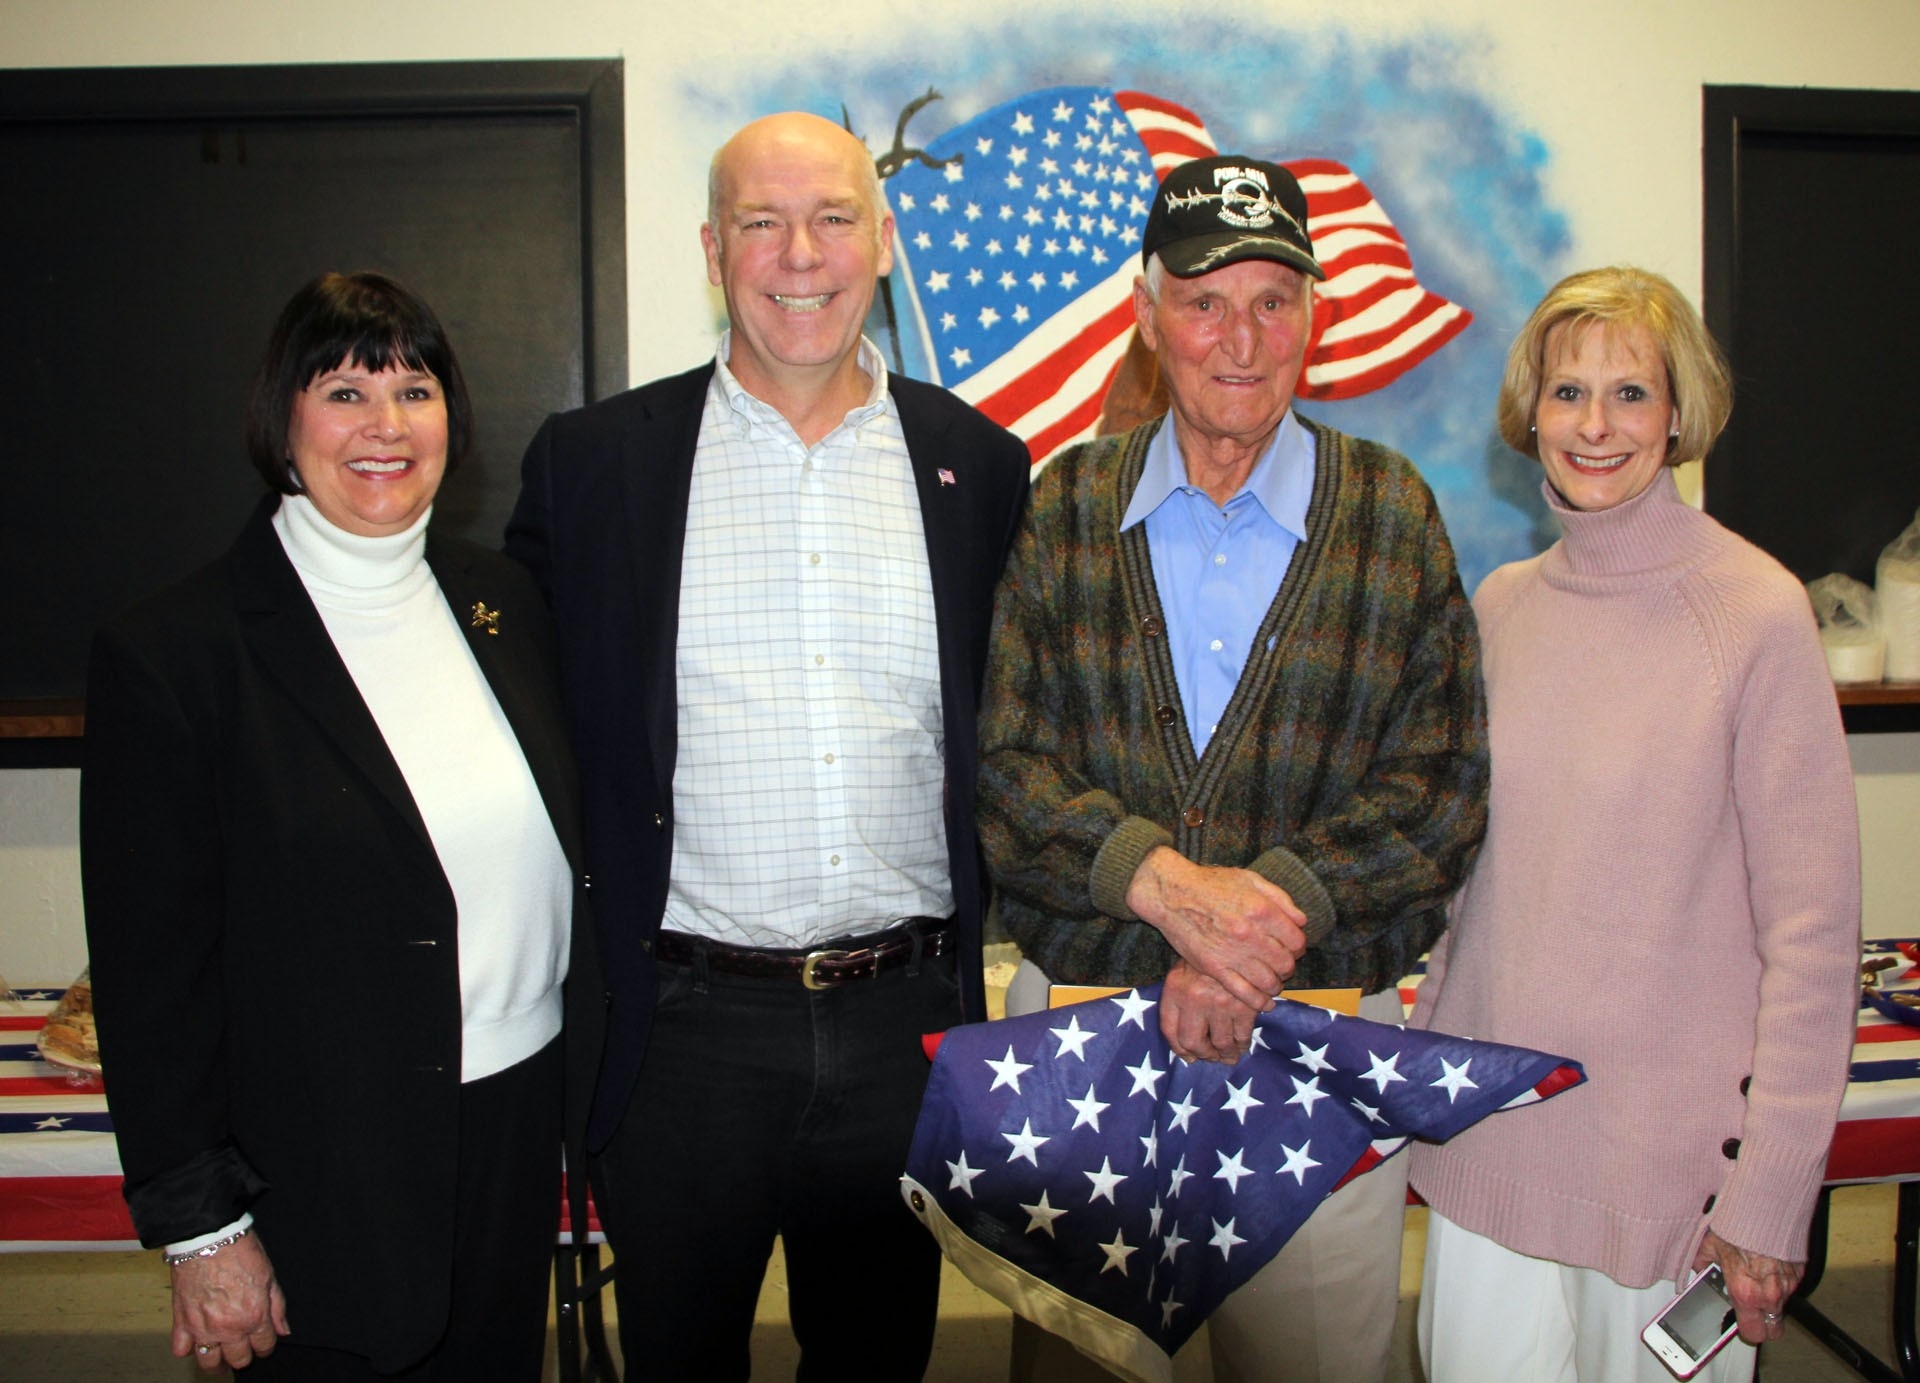 FROM LEFT: Melissa Hartman, U.S. Congressman Greg Gianforte, Frank Stoltz and Deborah Stoltz-Richardson pose for a picture. STAR PHOTO/Sharon Moore